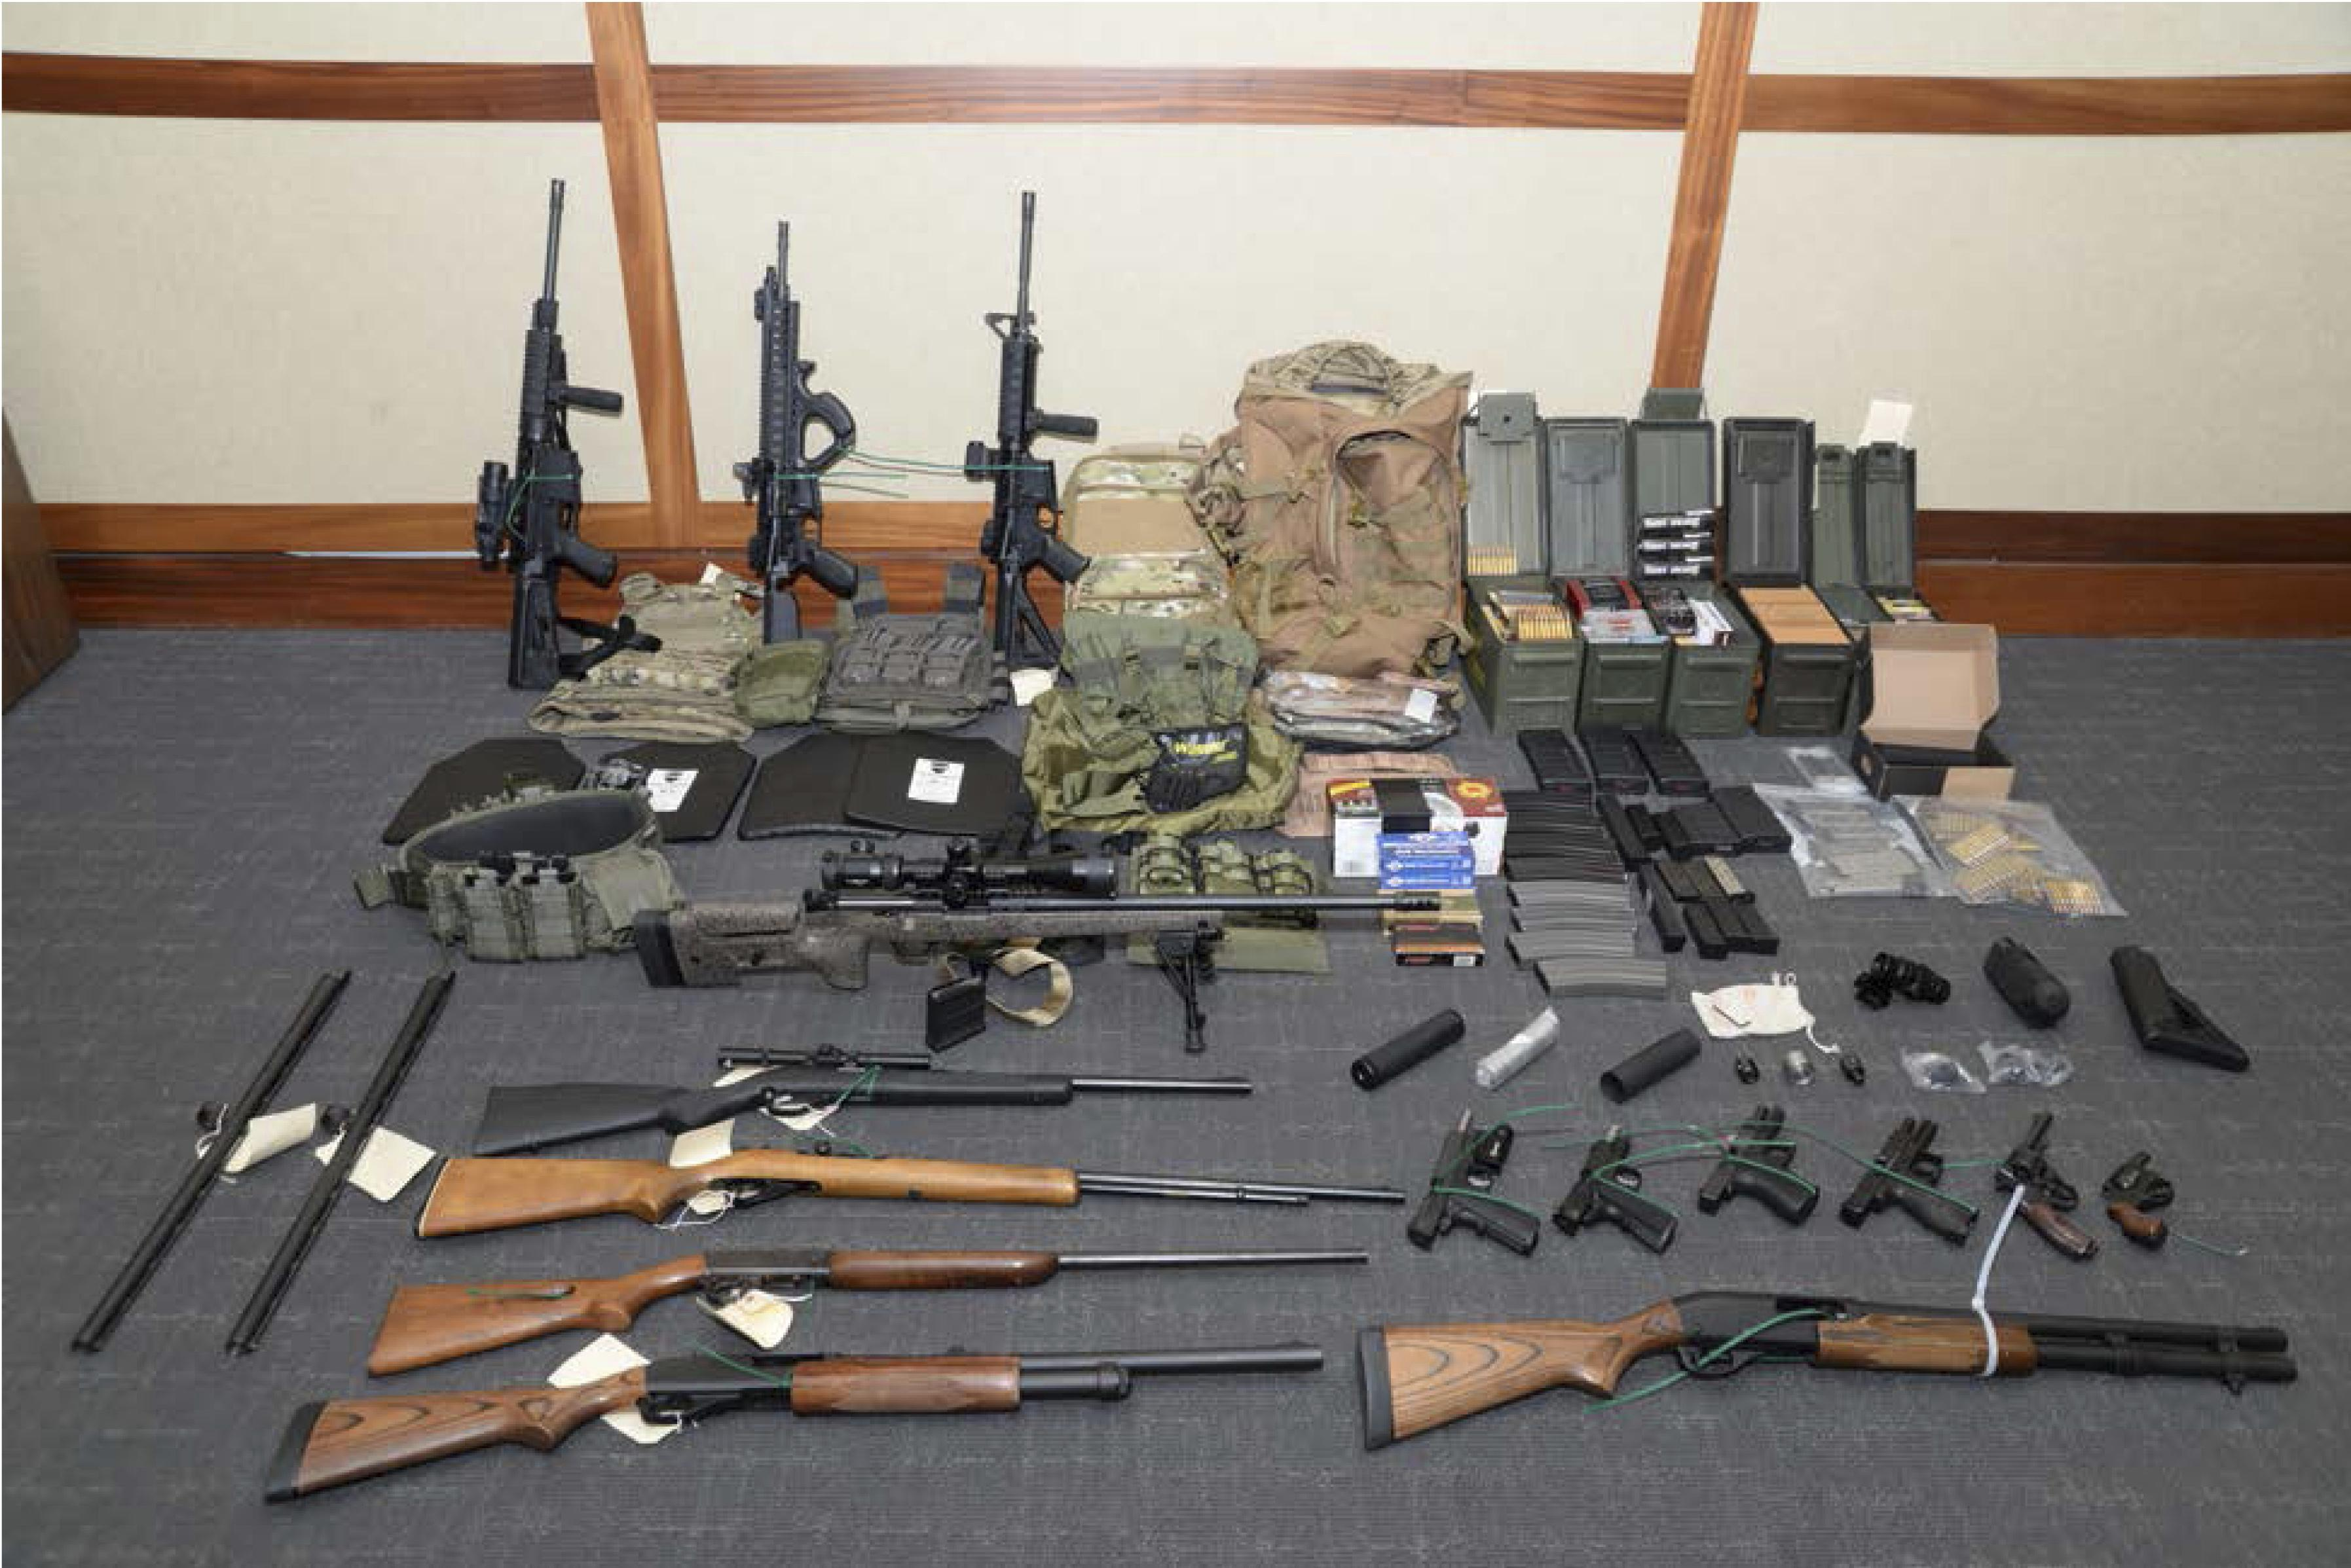 Christopher Hasson, Coast Guard officer accused of terror plot, wants gun charges dropped